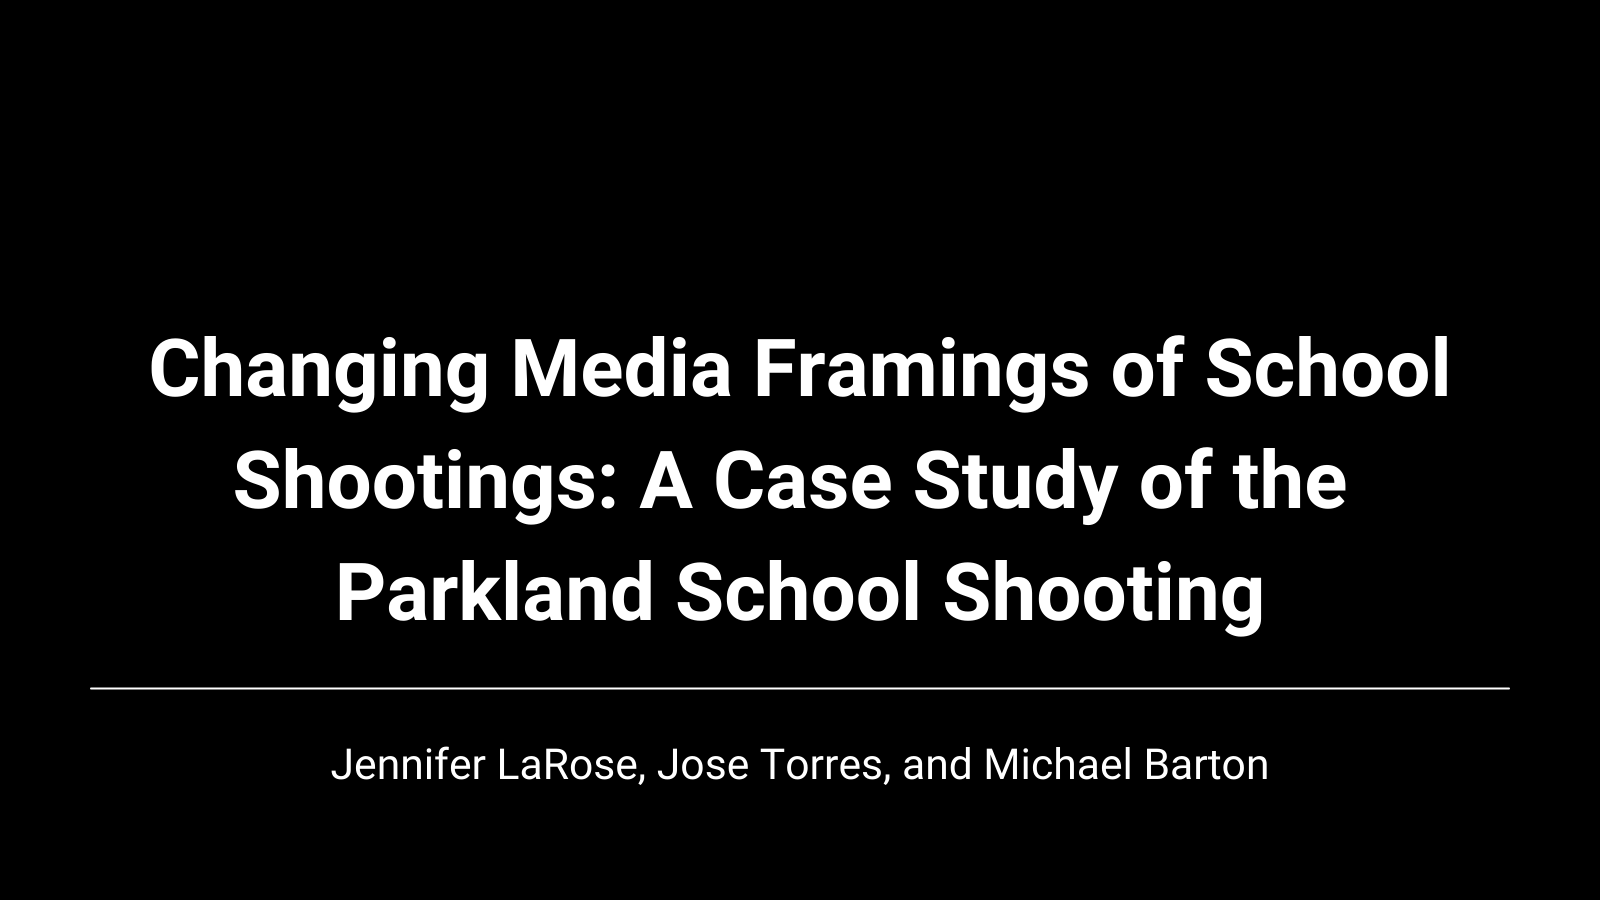 Changing Media Framings of School Shootings: A Case Study of the Parkland School Shooting